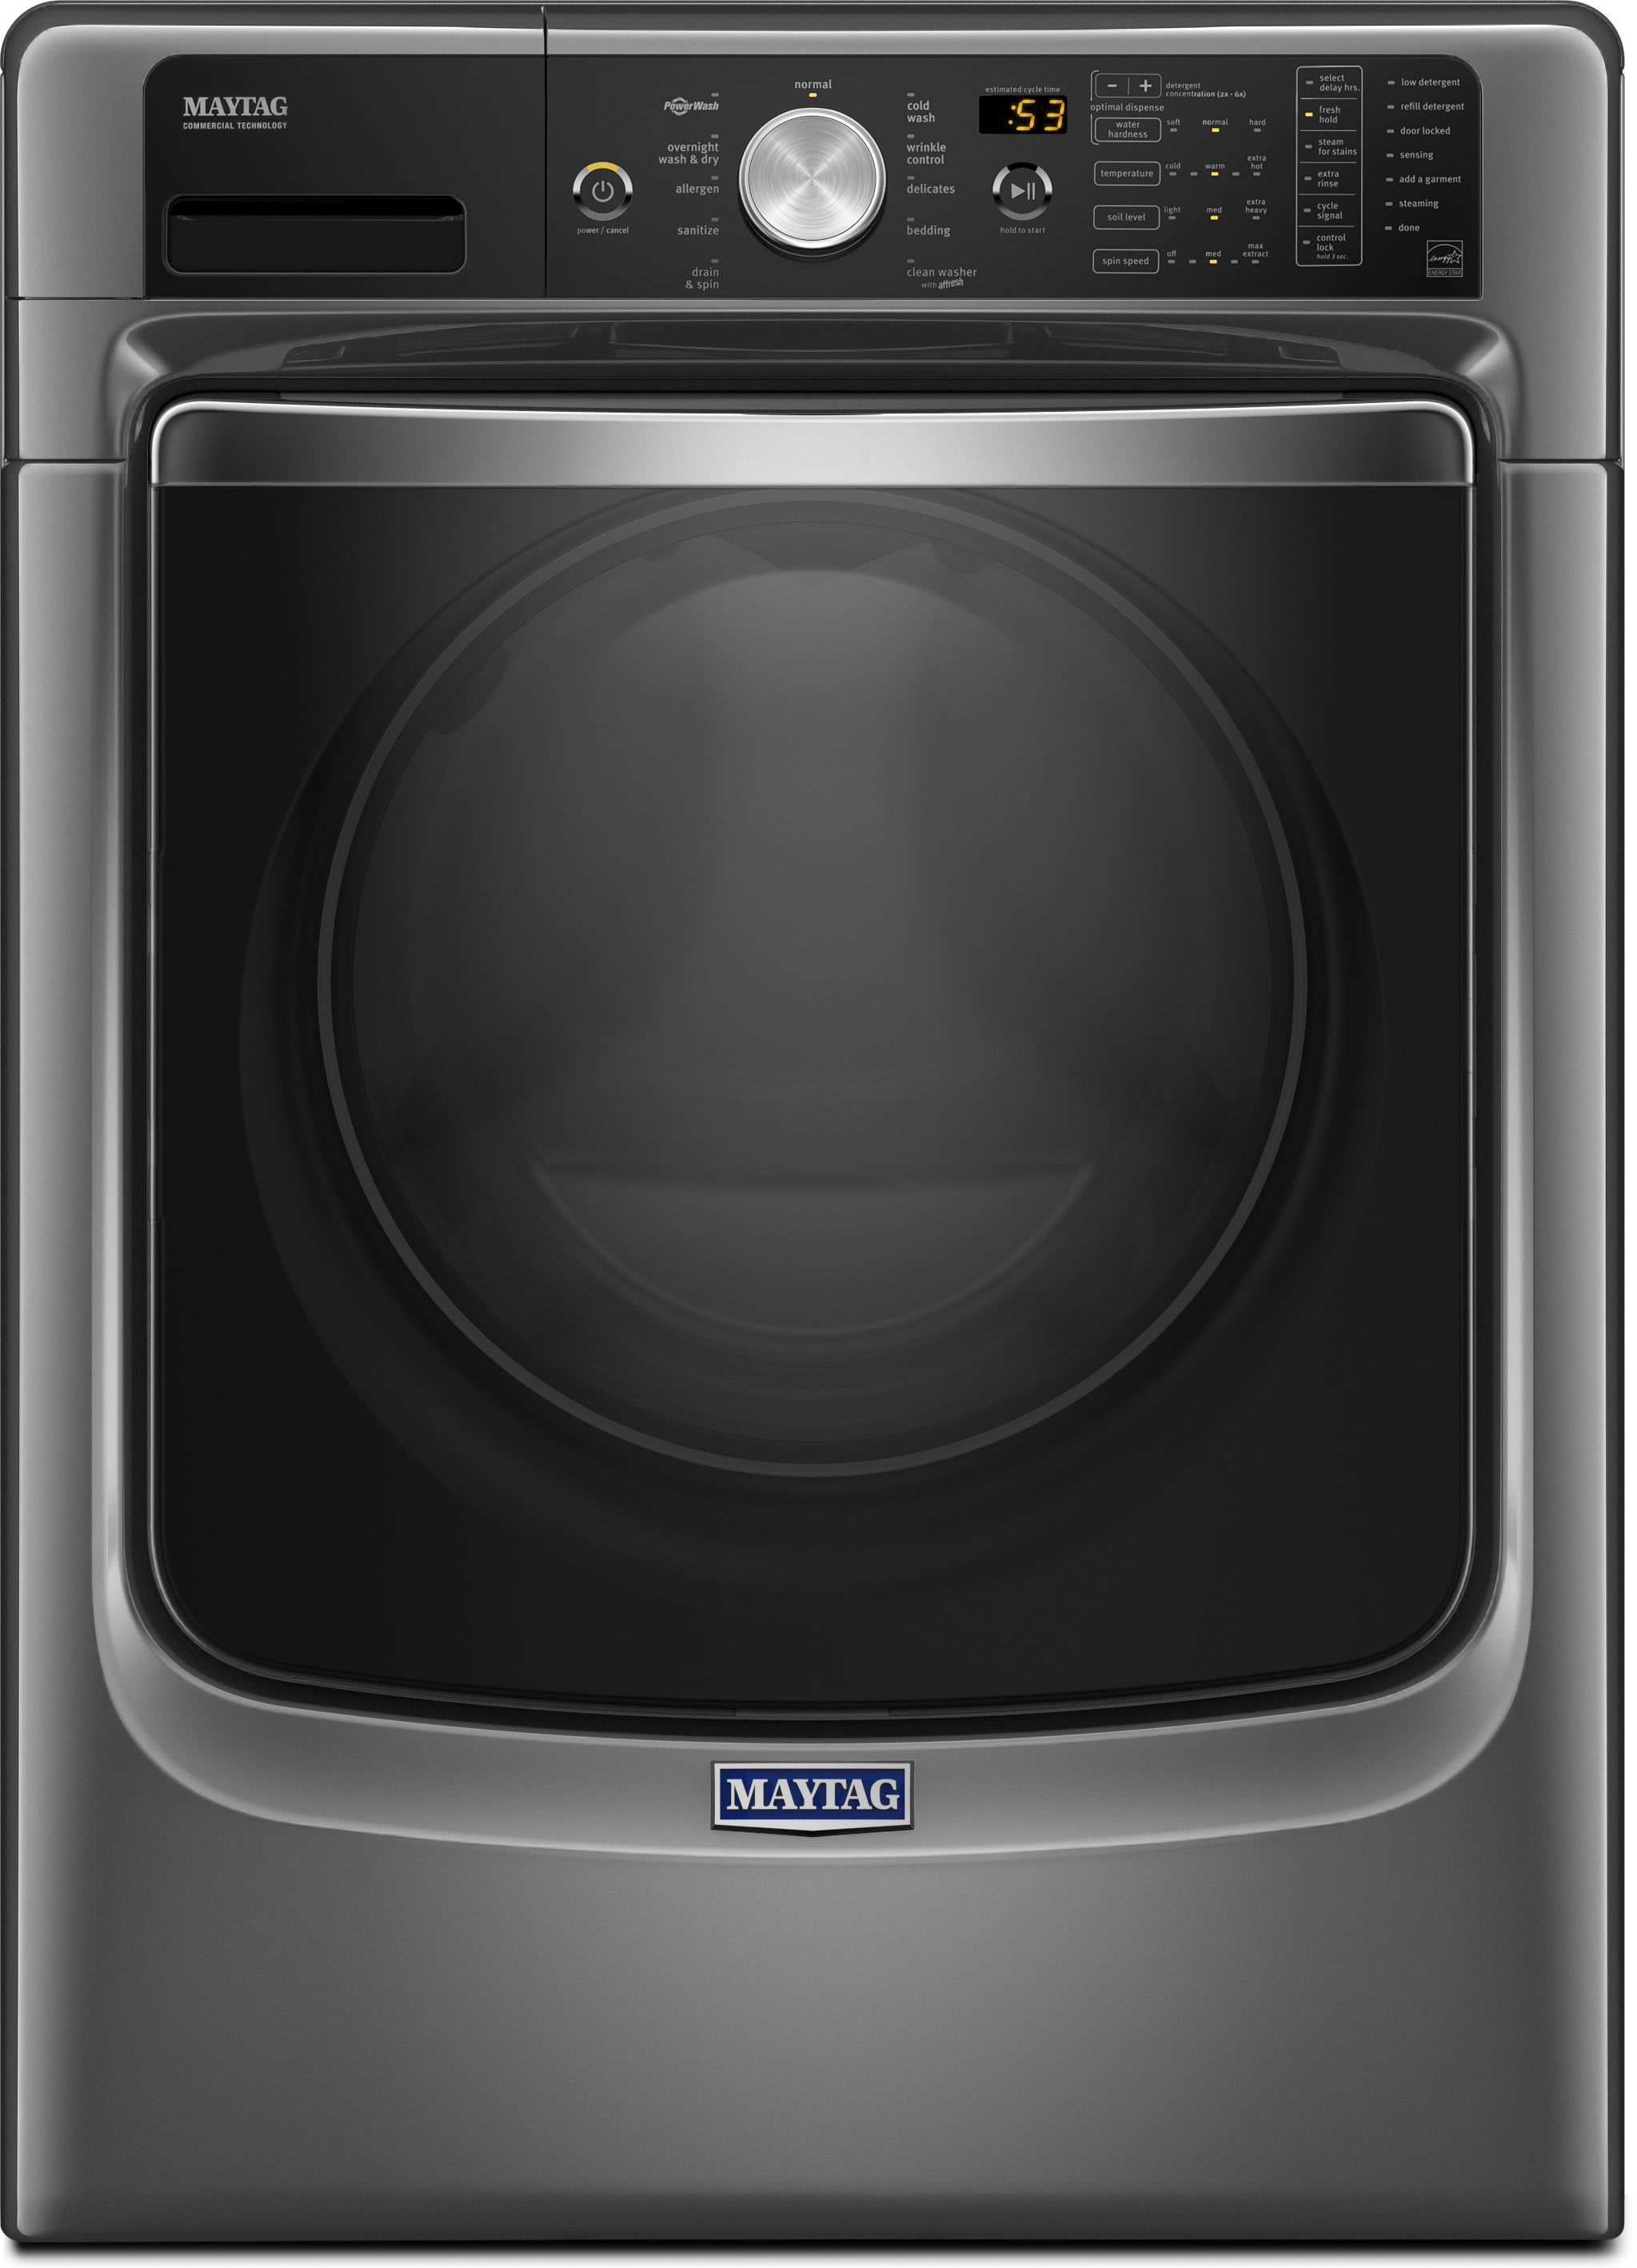 Maytag MED8200FC 27 Inch 7 4 cu ft Electric Dryer with Steam